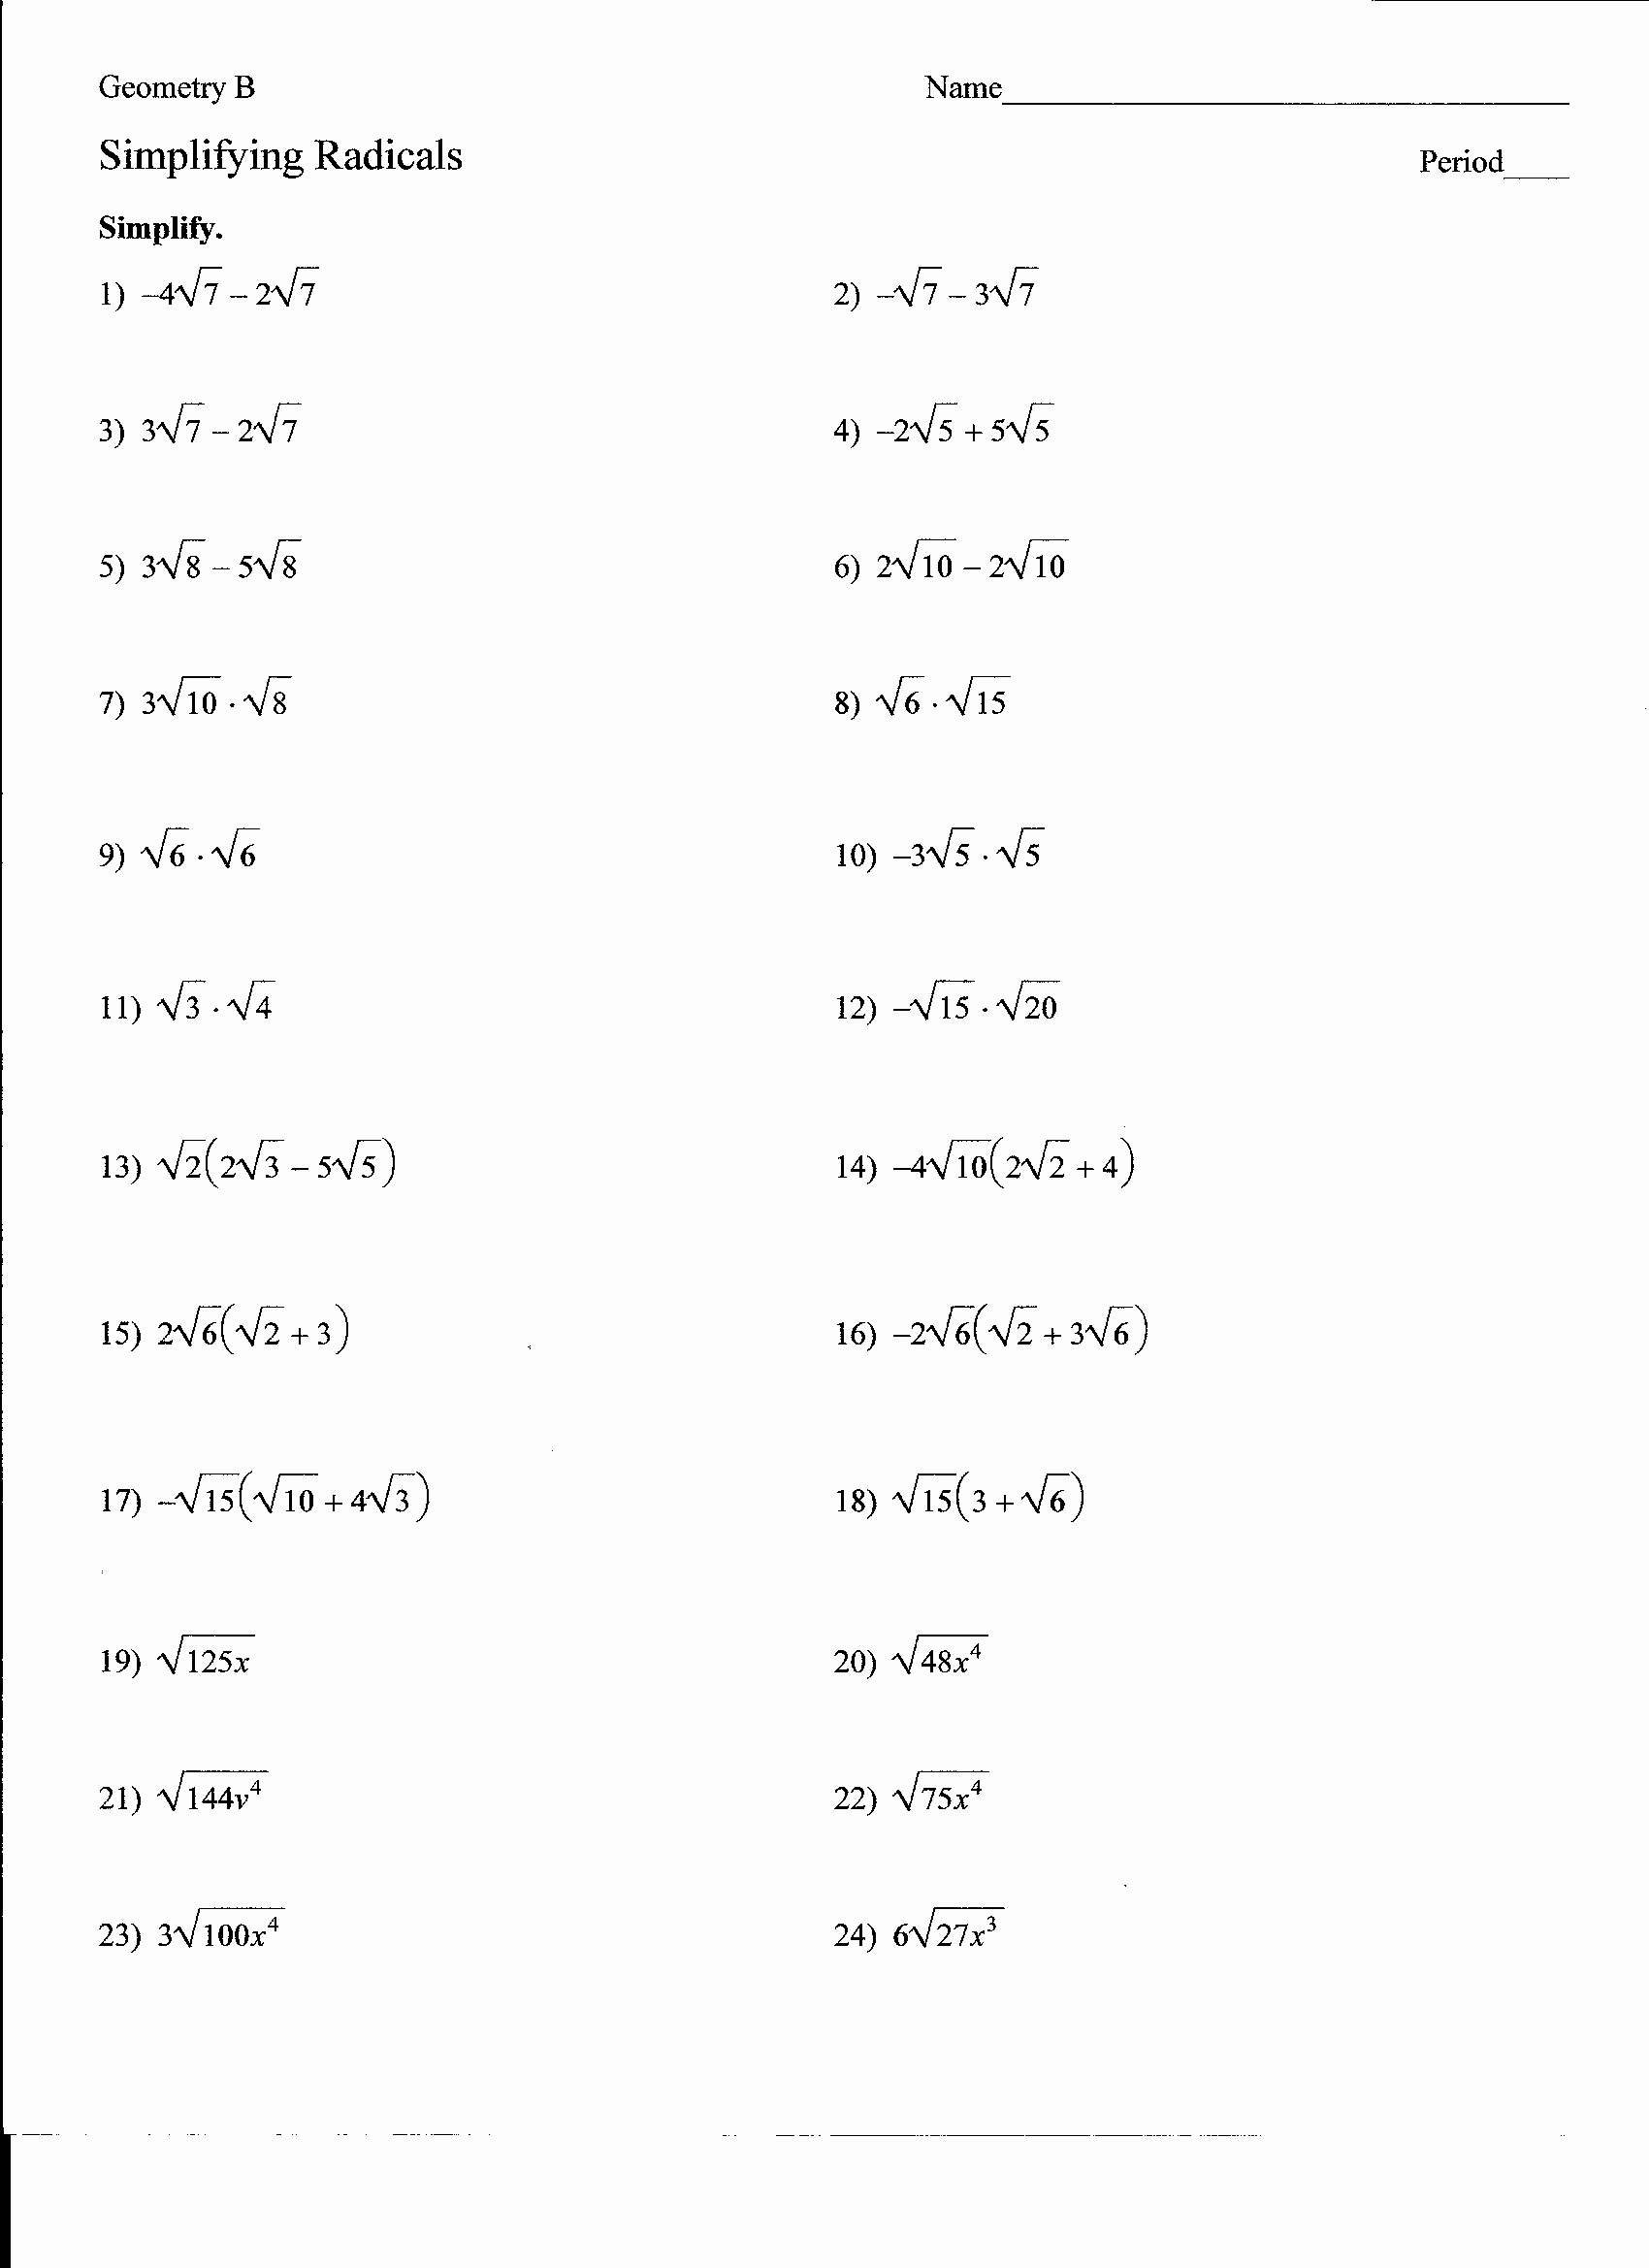 Dividing Radical Expressions Worksheet Inspirational 19 Best Of Multiplying and Dividing Radicals